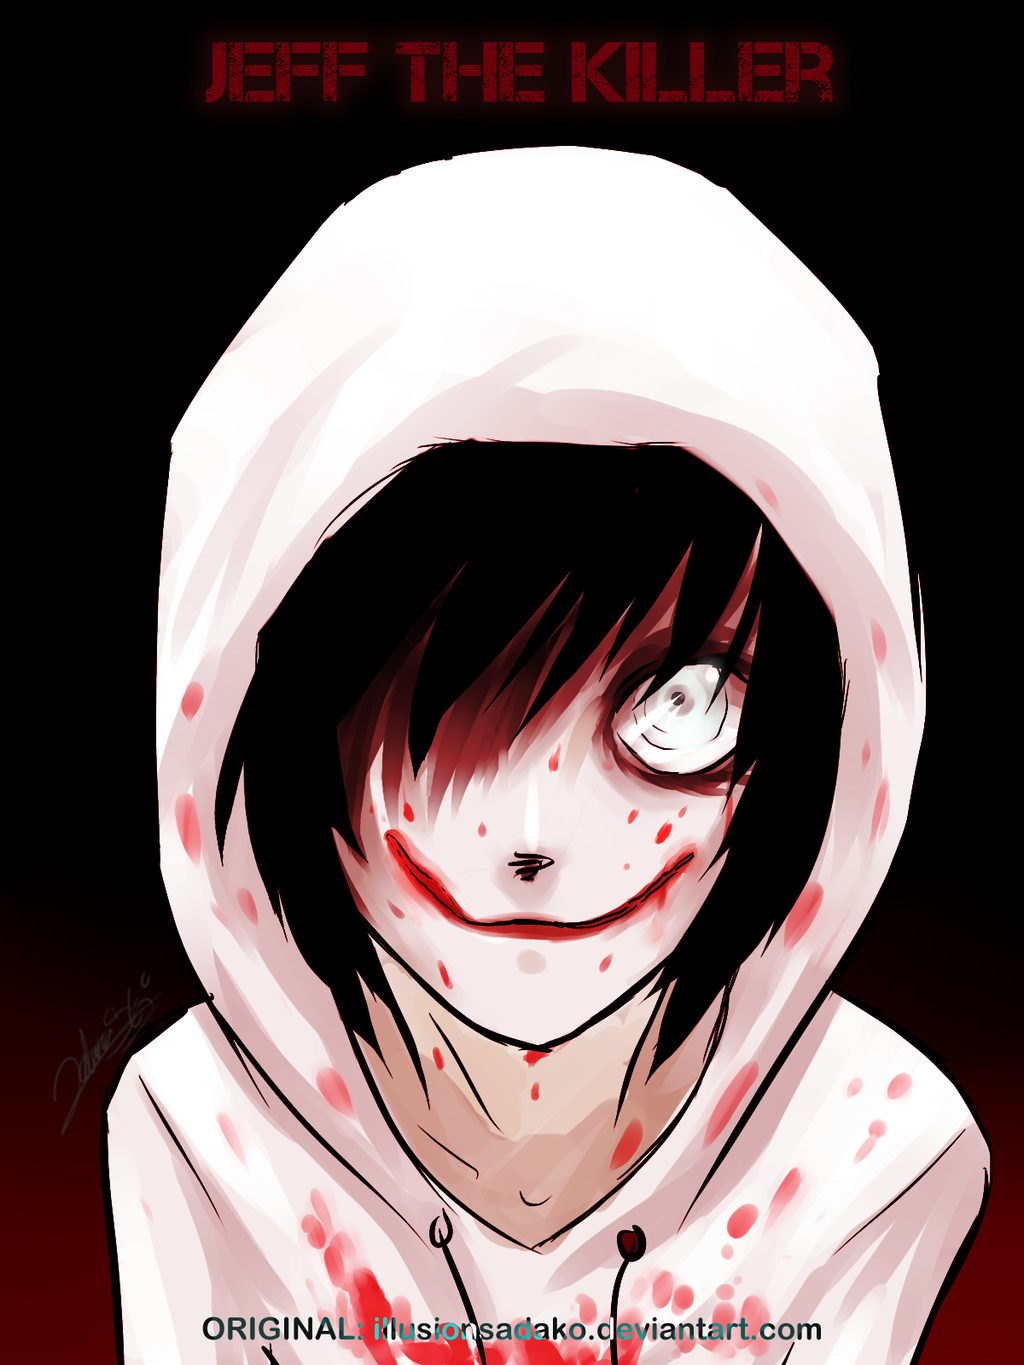 jeff-after-and-now-jeff-the-killer-34571181-1024-1365.png